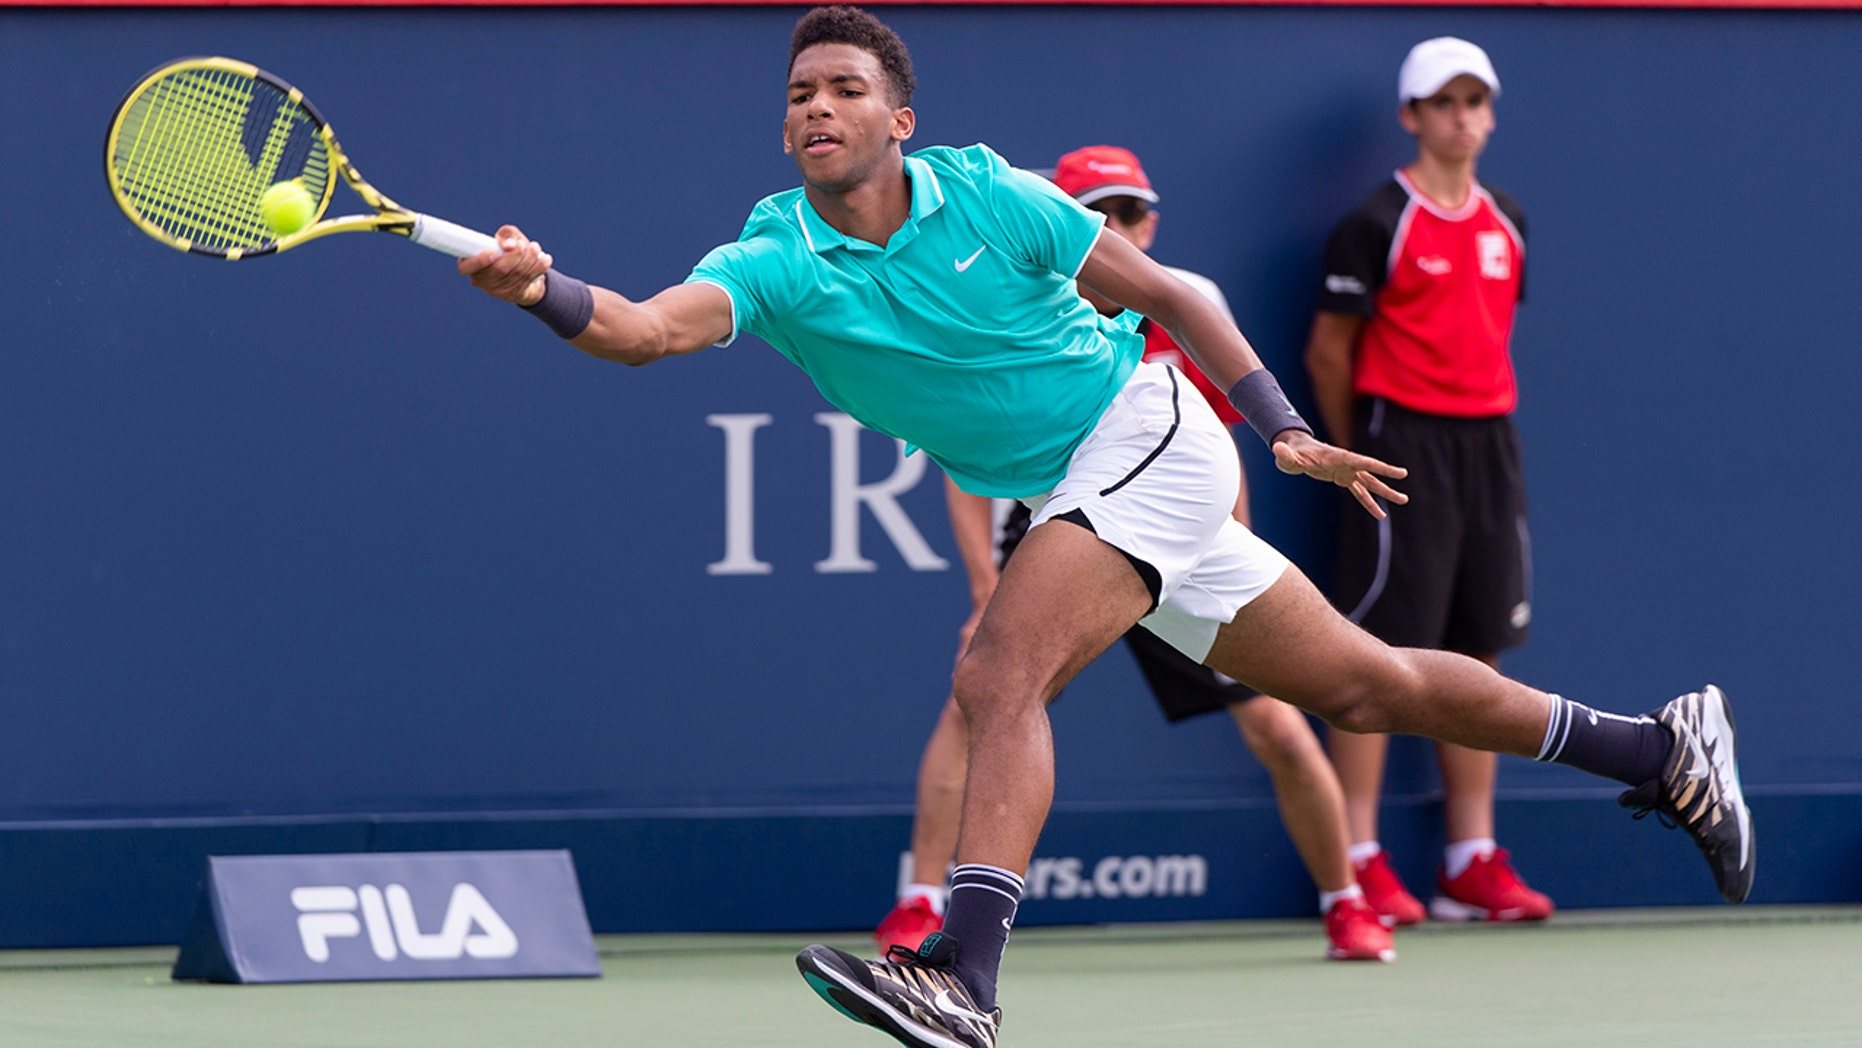 Felix Auger-Aliassime of Canada lunges to return to compatriot Vasek Pospisil during a first round match at the Rogers Cup tennis tournament in Montreal, Tuesday, Aug. 6, 2019. (Paul Chiasson/The Canadian Press via AP)